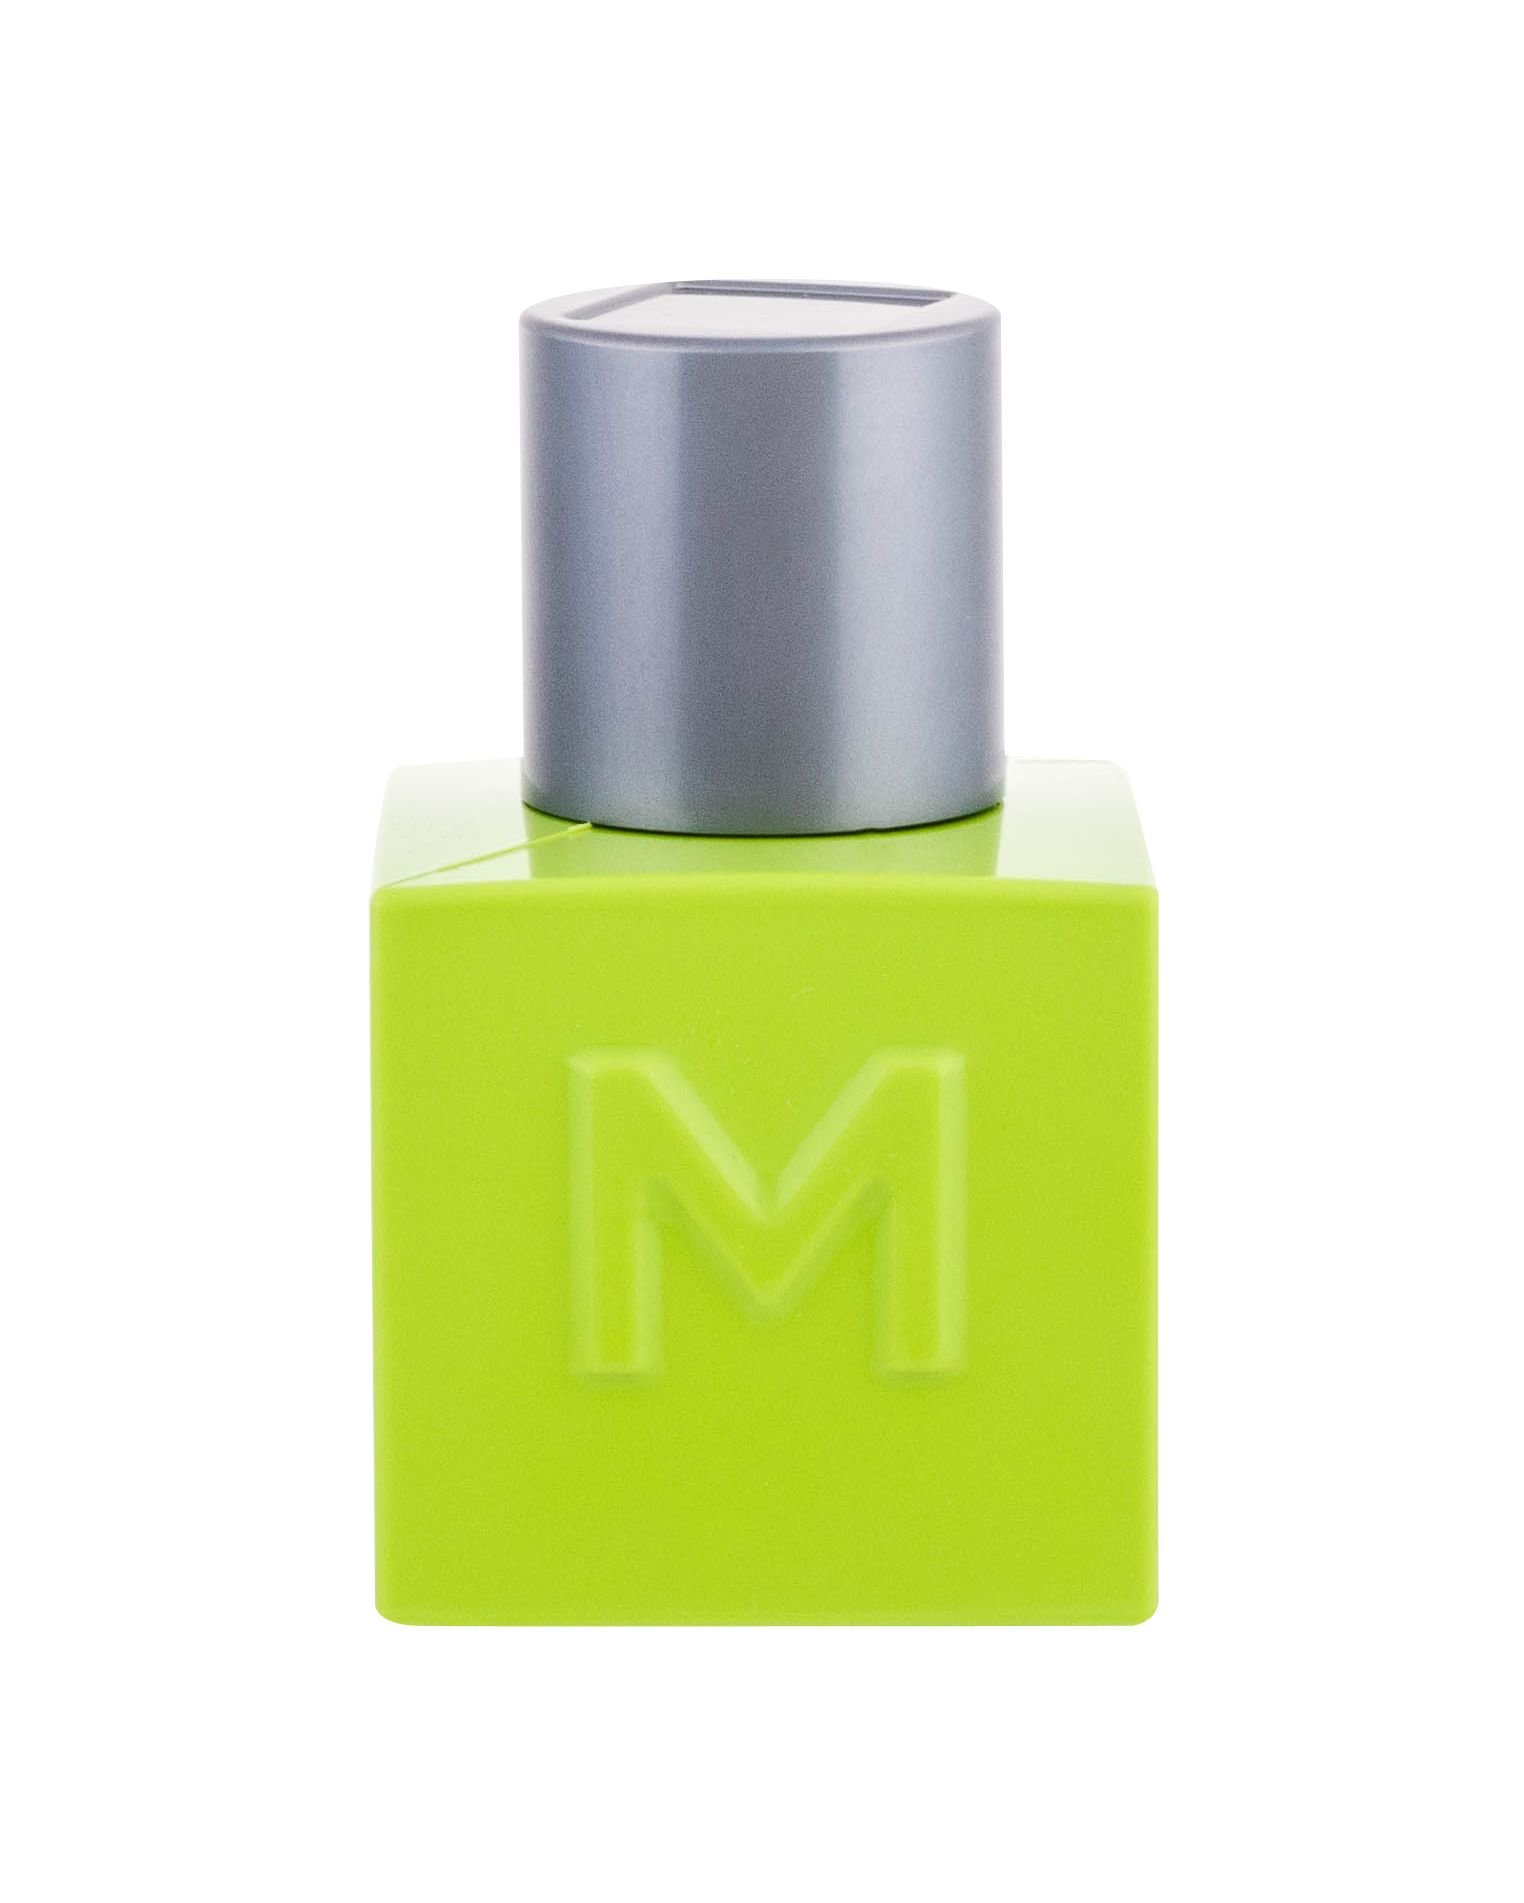 Mexx Man Festival Summer Eau de Toilette 35ml